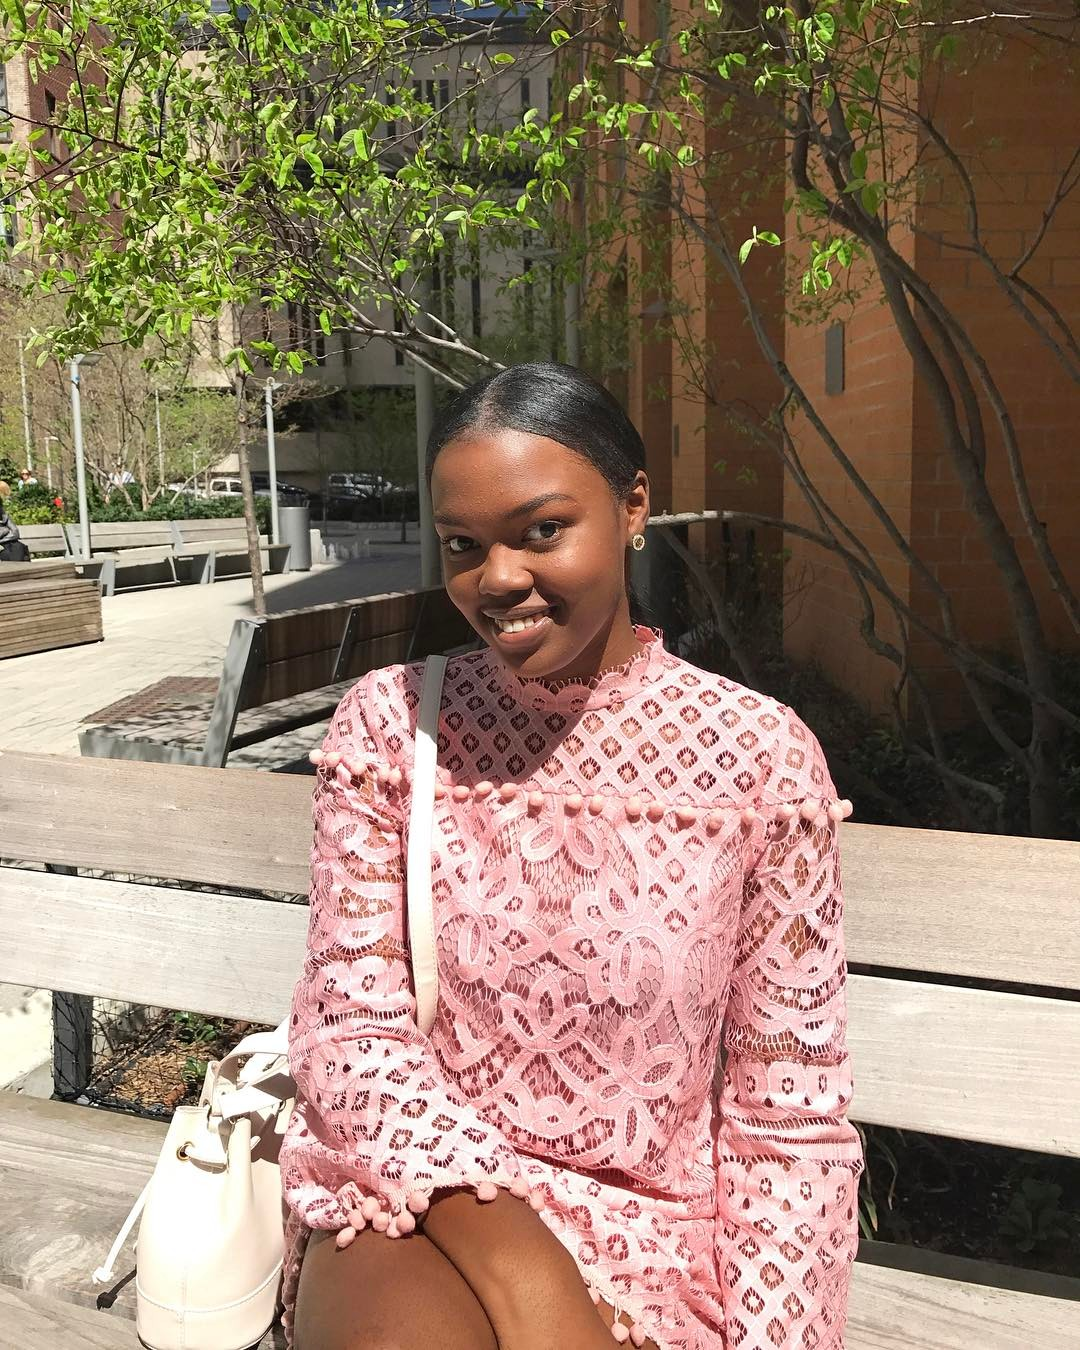 Sasha Ariel Alston created a book about coding for young girls looking into STEM